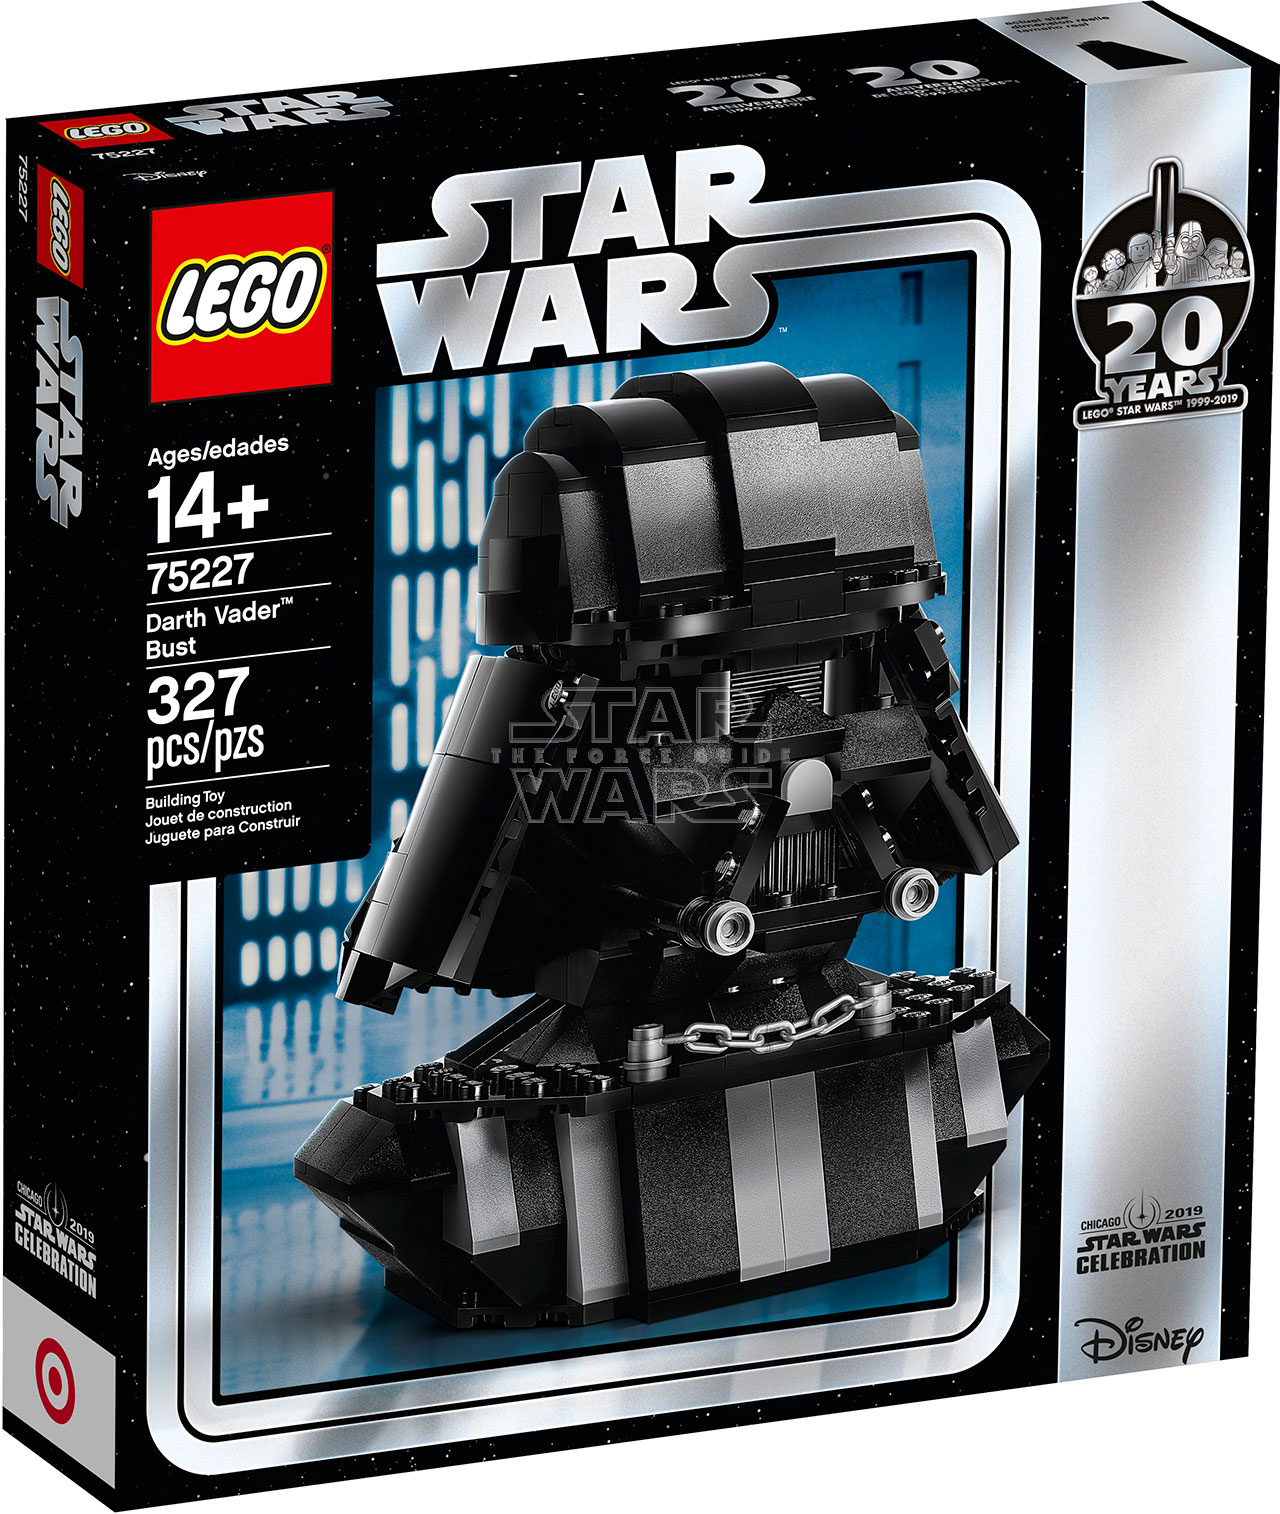 Star Wars Lego 75227 Darth Vader Bust Theforceguidecom